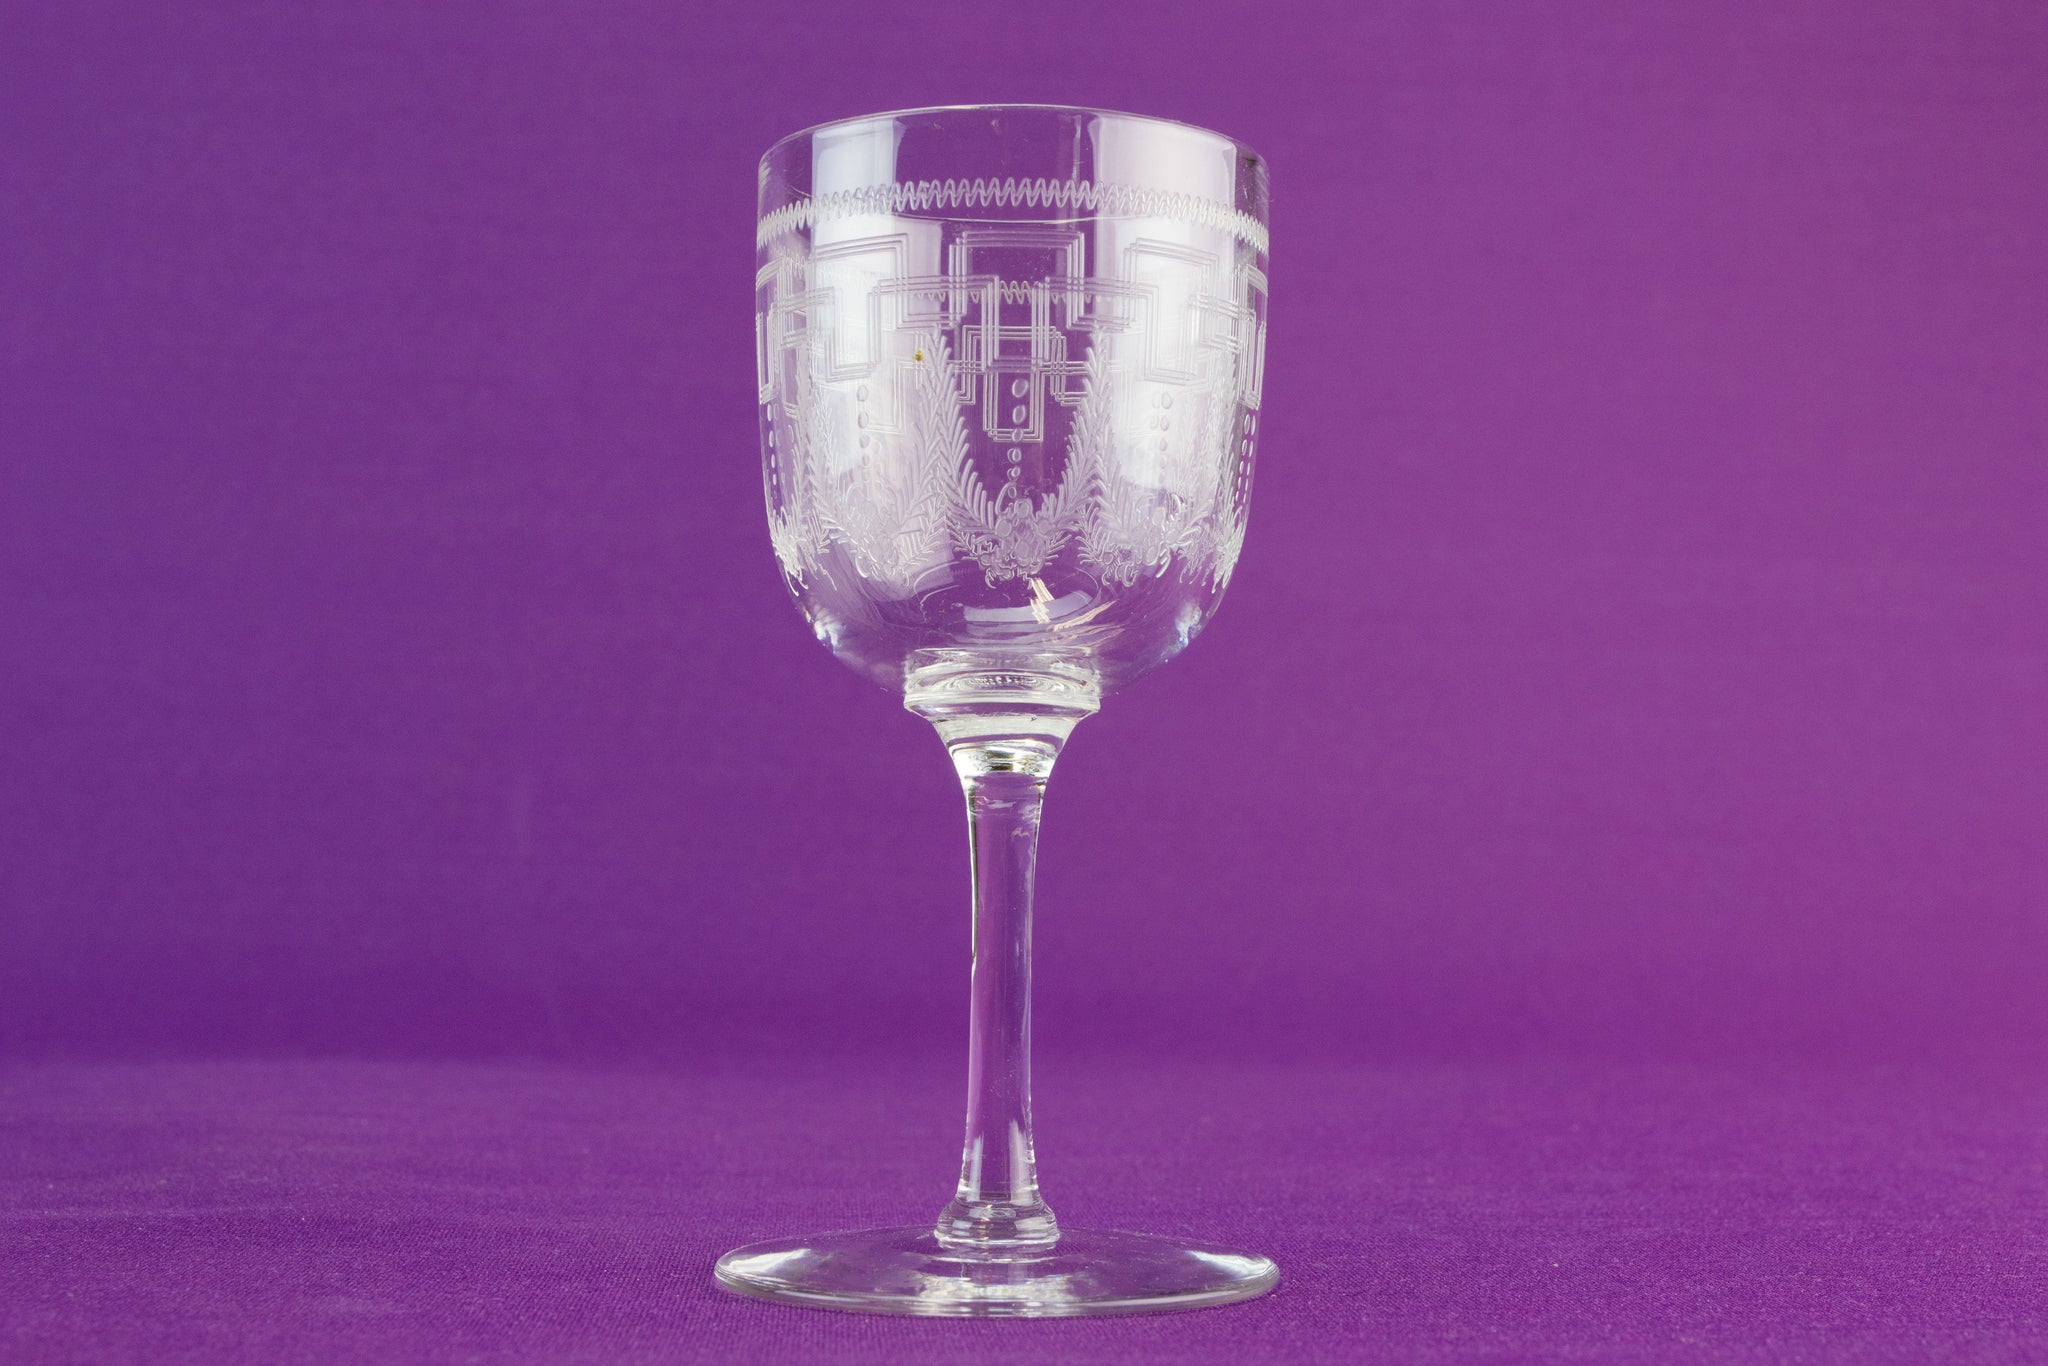 6 Greek key port glass, circa 1910 by Lavish Shoestring